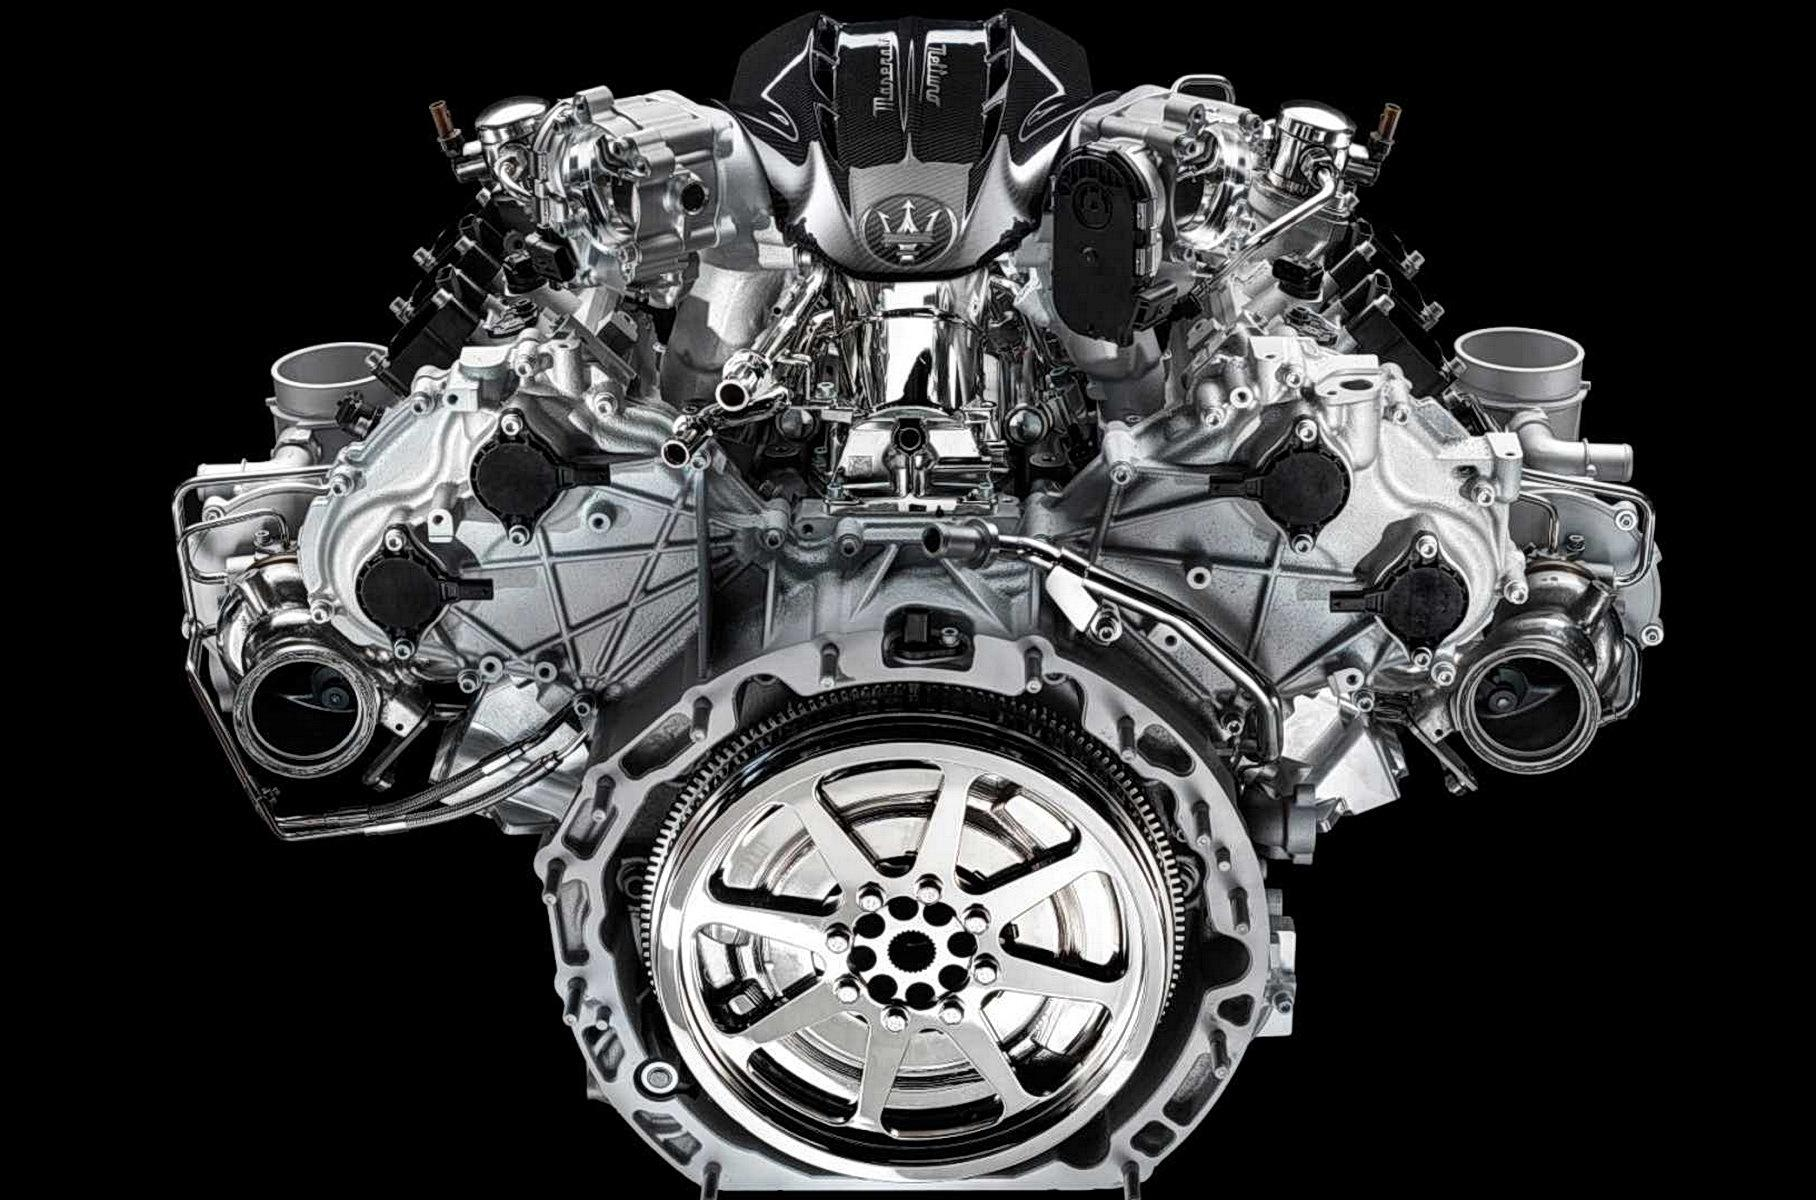 Maserati has released a few details about its upcoming in-house designed six-cylinder engine called Nettuno, which it plans to install on the MC20.